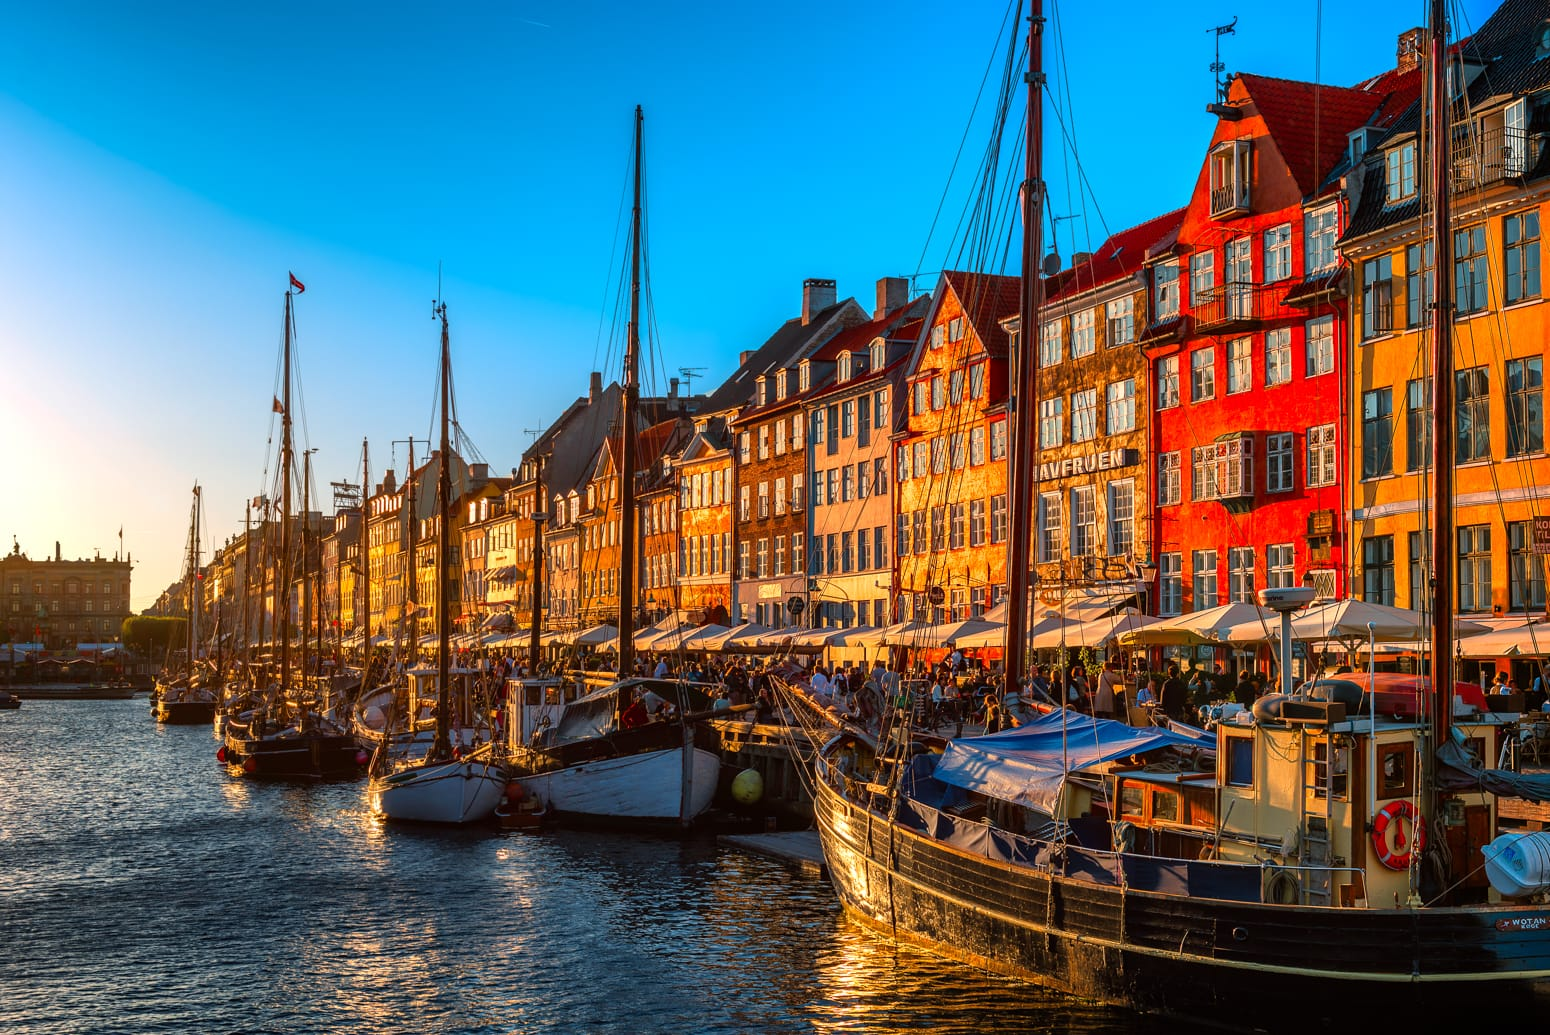 Nyhavn in Copenhagen, Denmark at sunset. The colorful gabled houses during a summers evening